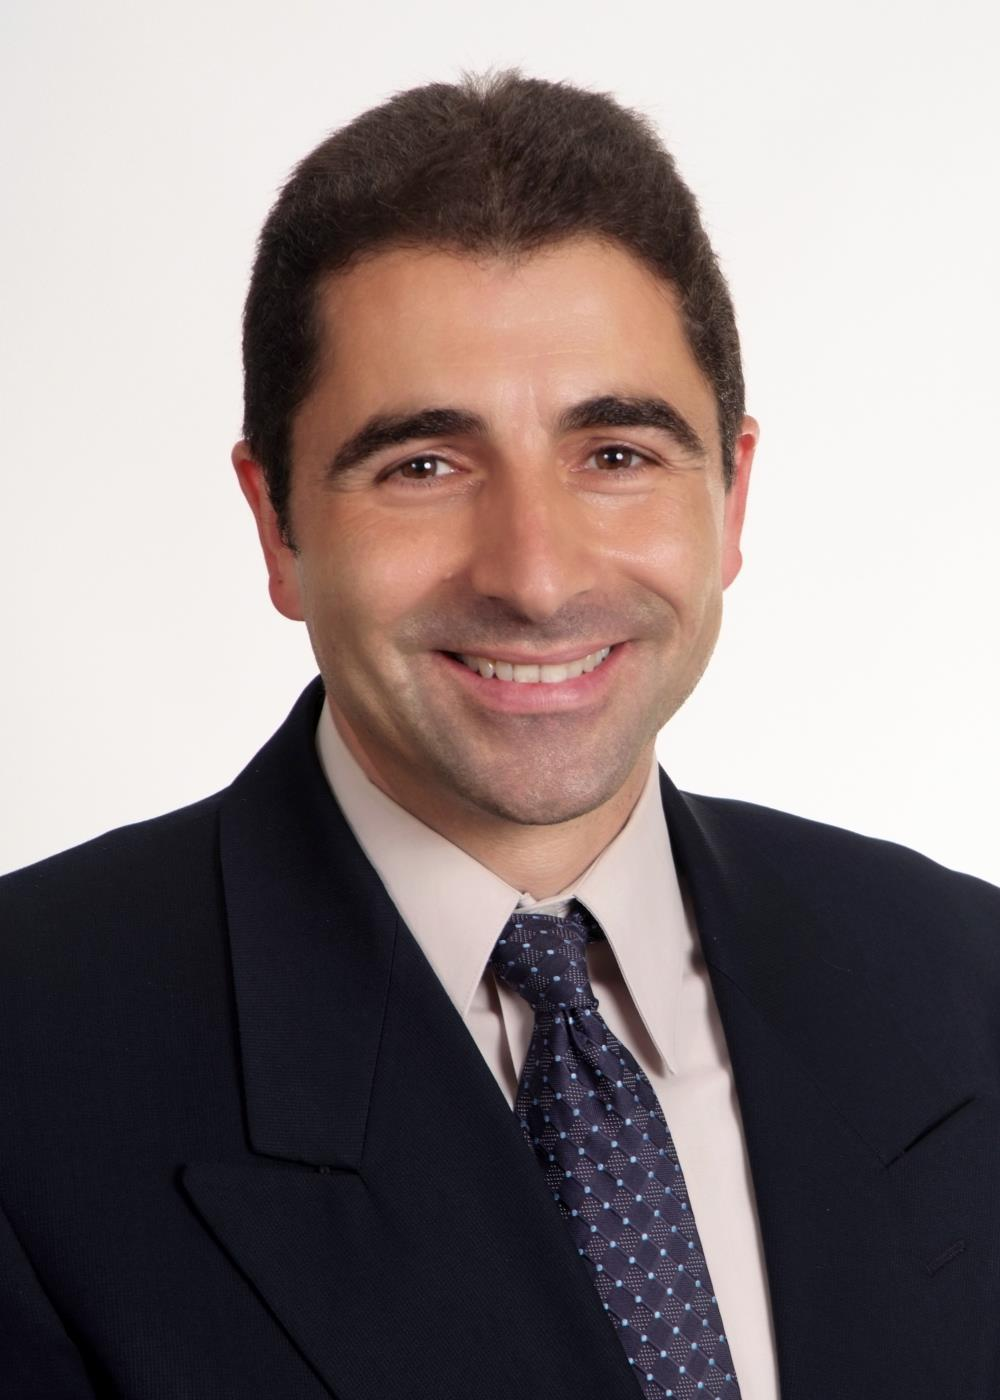 Christopher Passaretti - Director of Sales